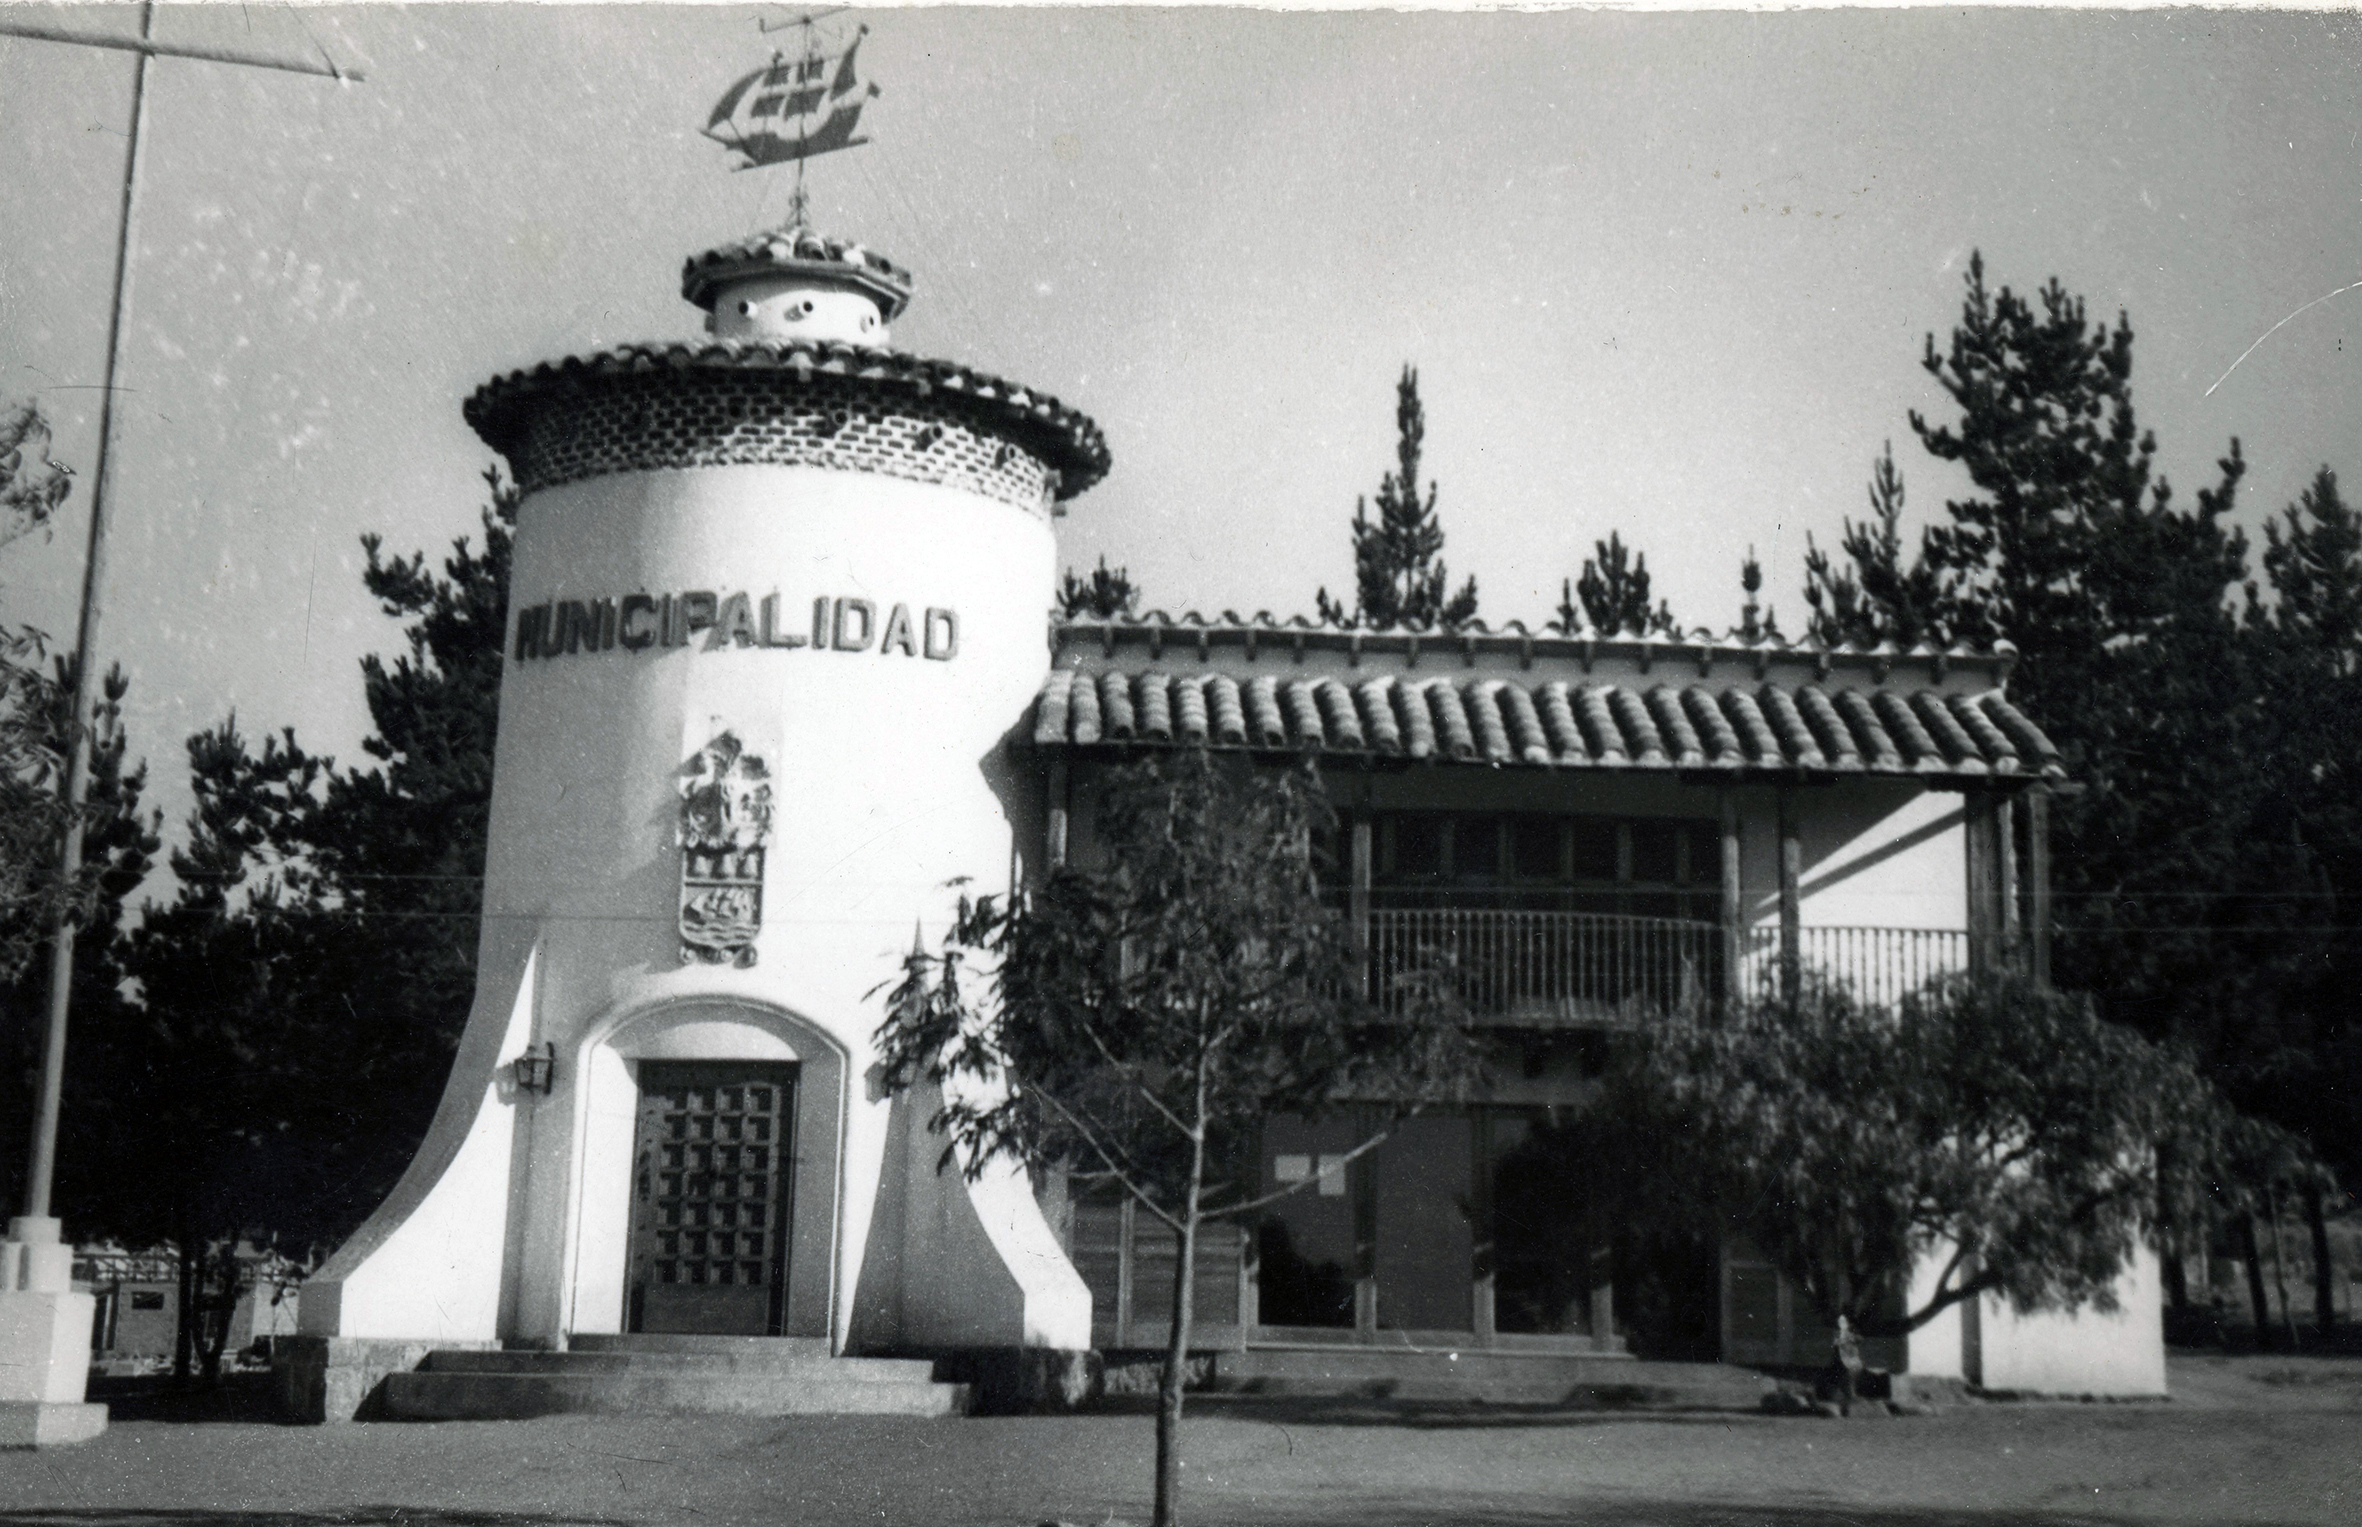 Enterreno - Fotos históricas de chile - fotos antiguas de Chile - Municipalidad de Papudo en 1950